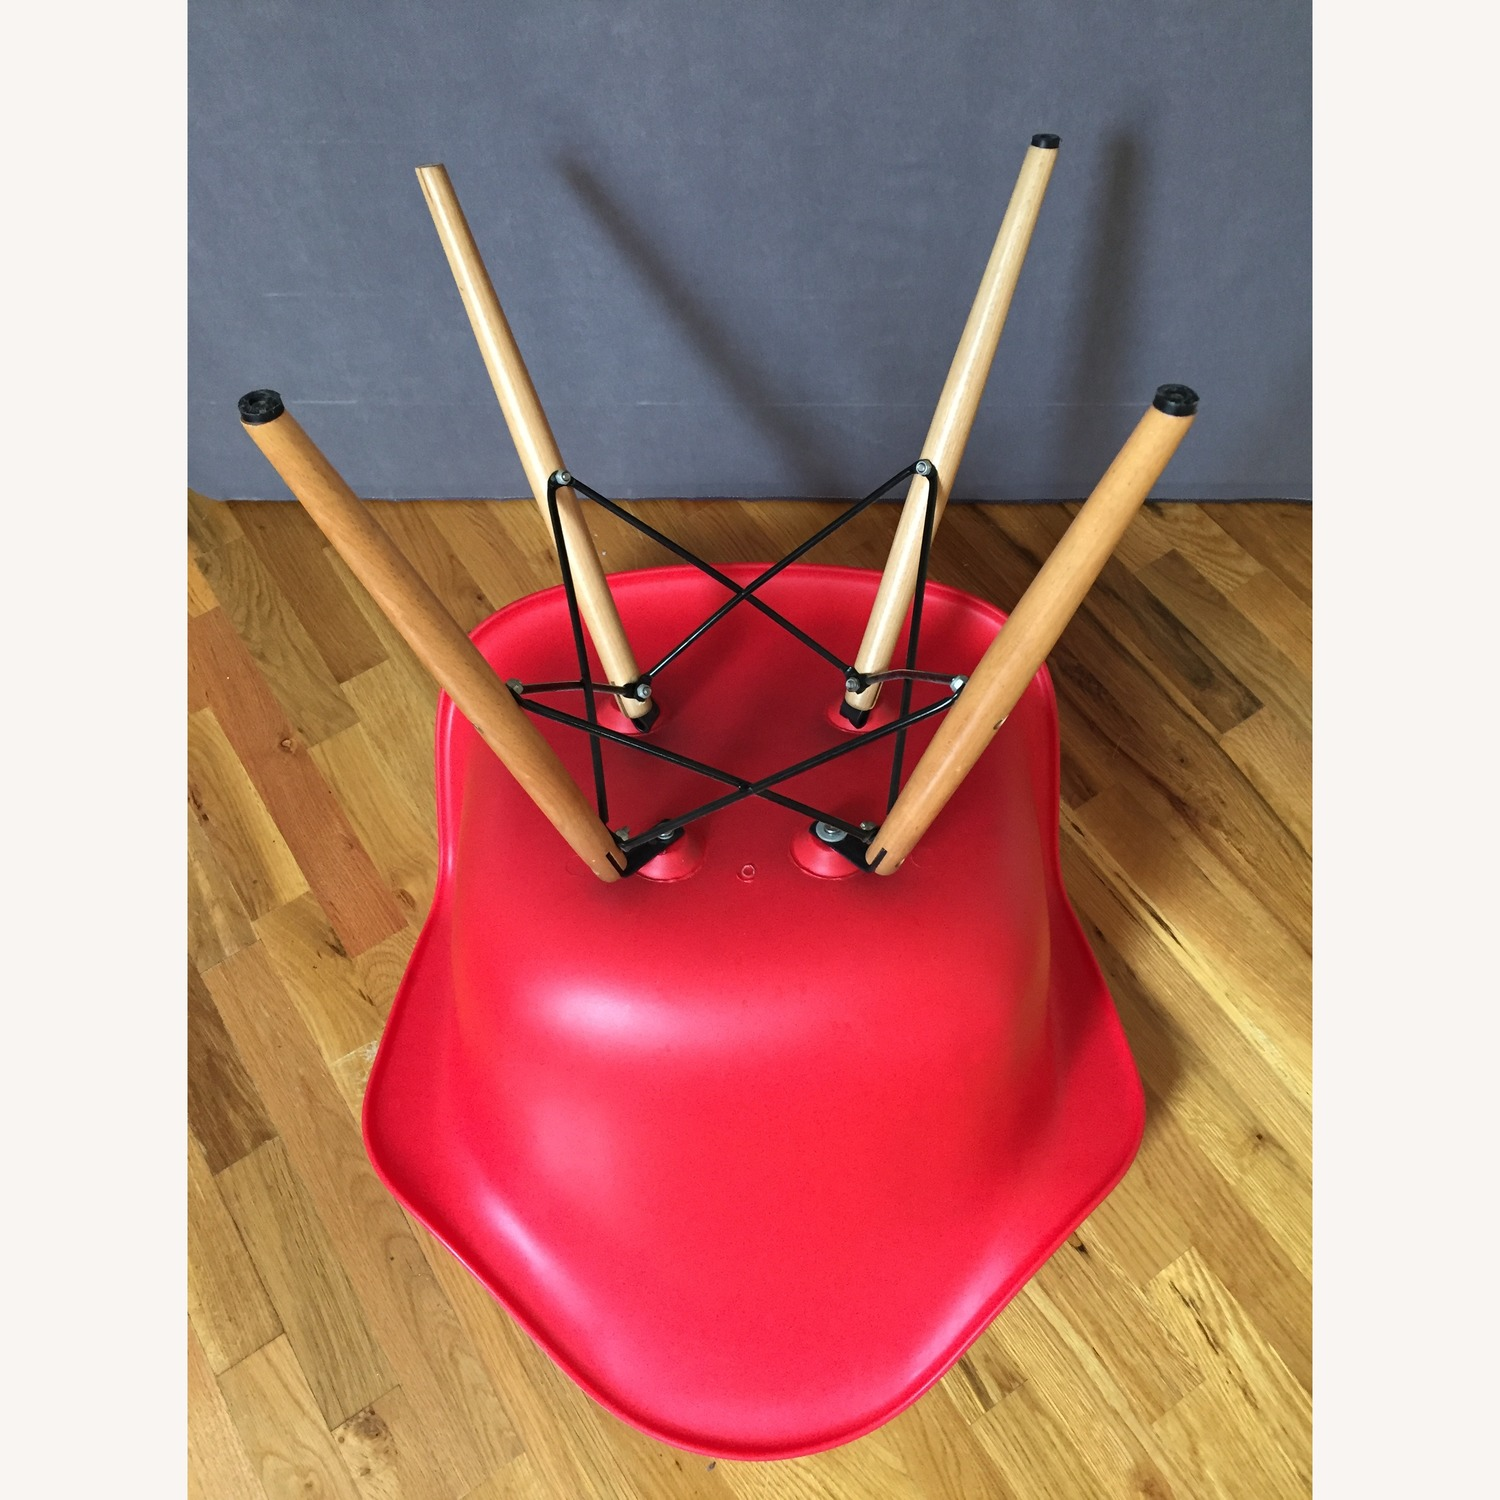 Replica Eames Molded Plastic Red Armchair - image-2